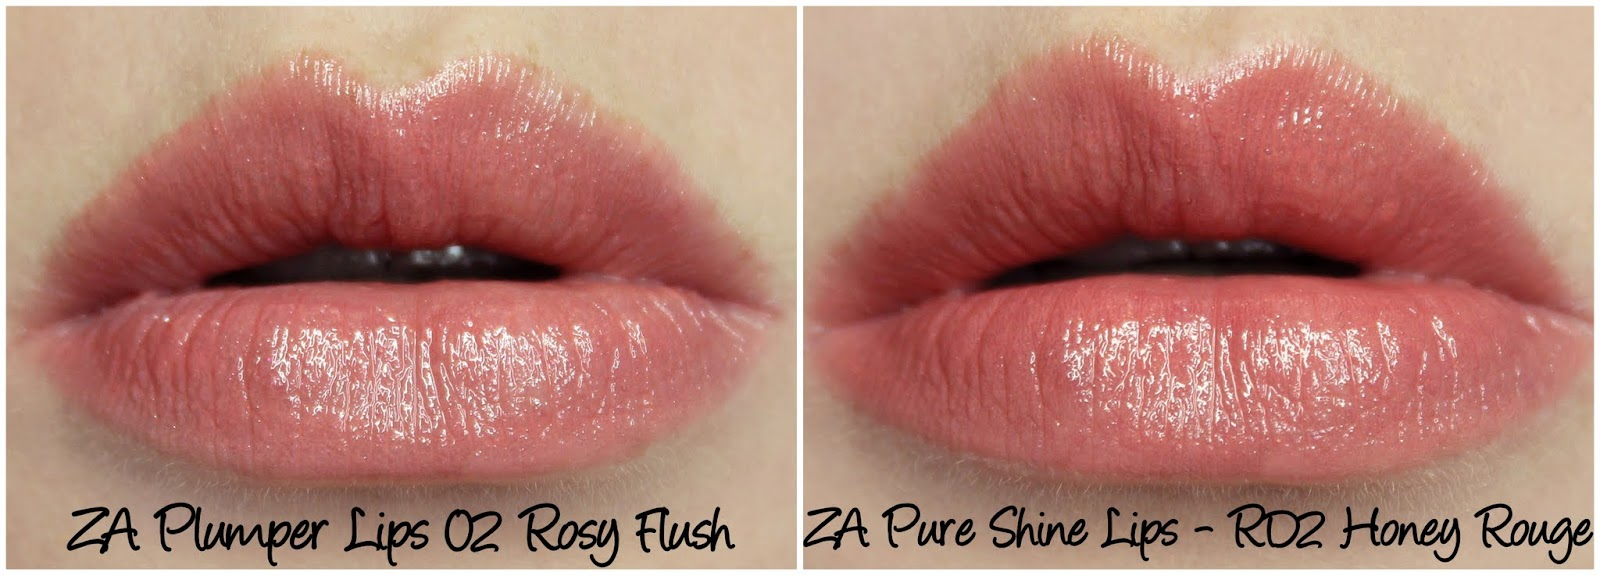 ZA Plumper Lips 02 Rosy Flush & Pure Shine Lips RD2 Honey Rouge comparison